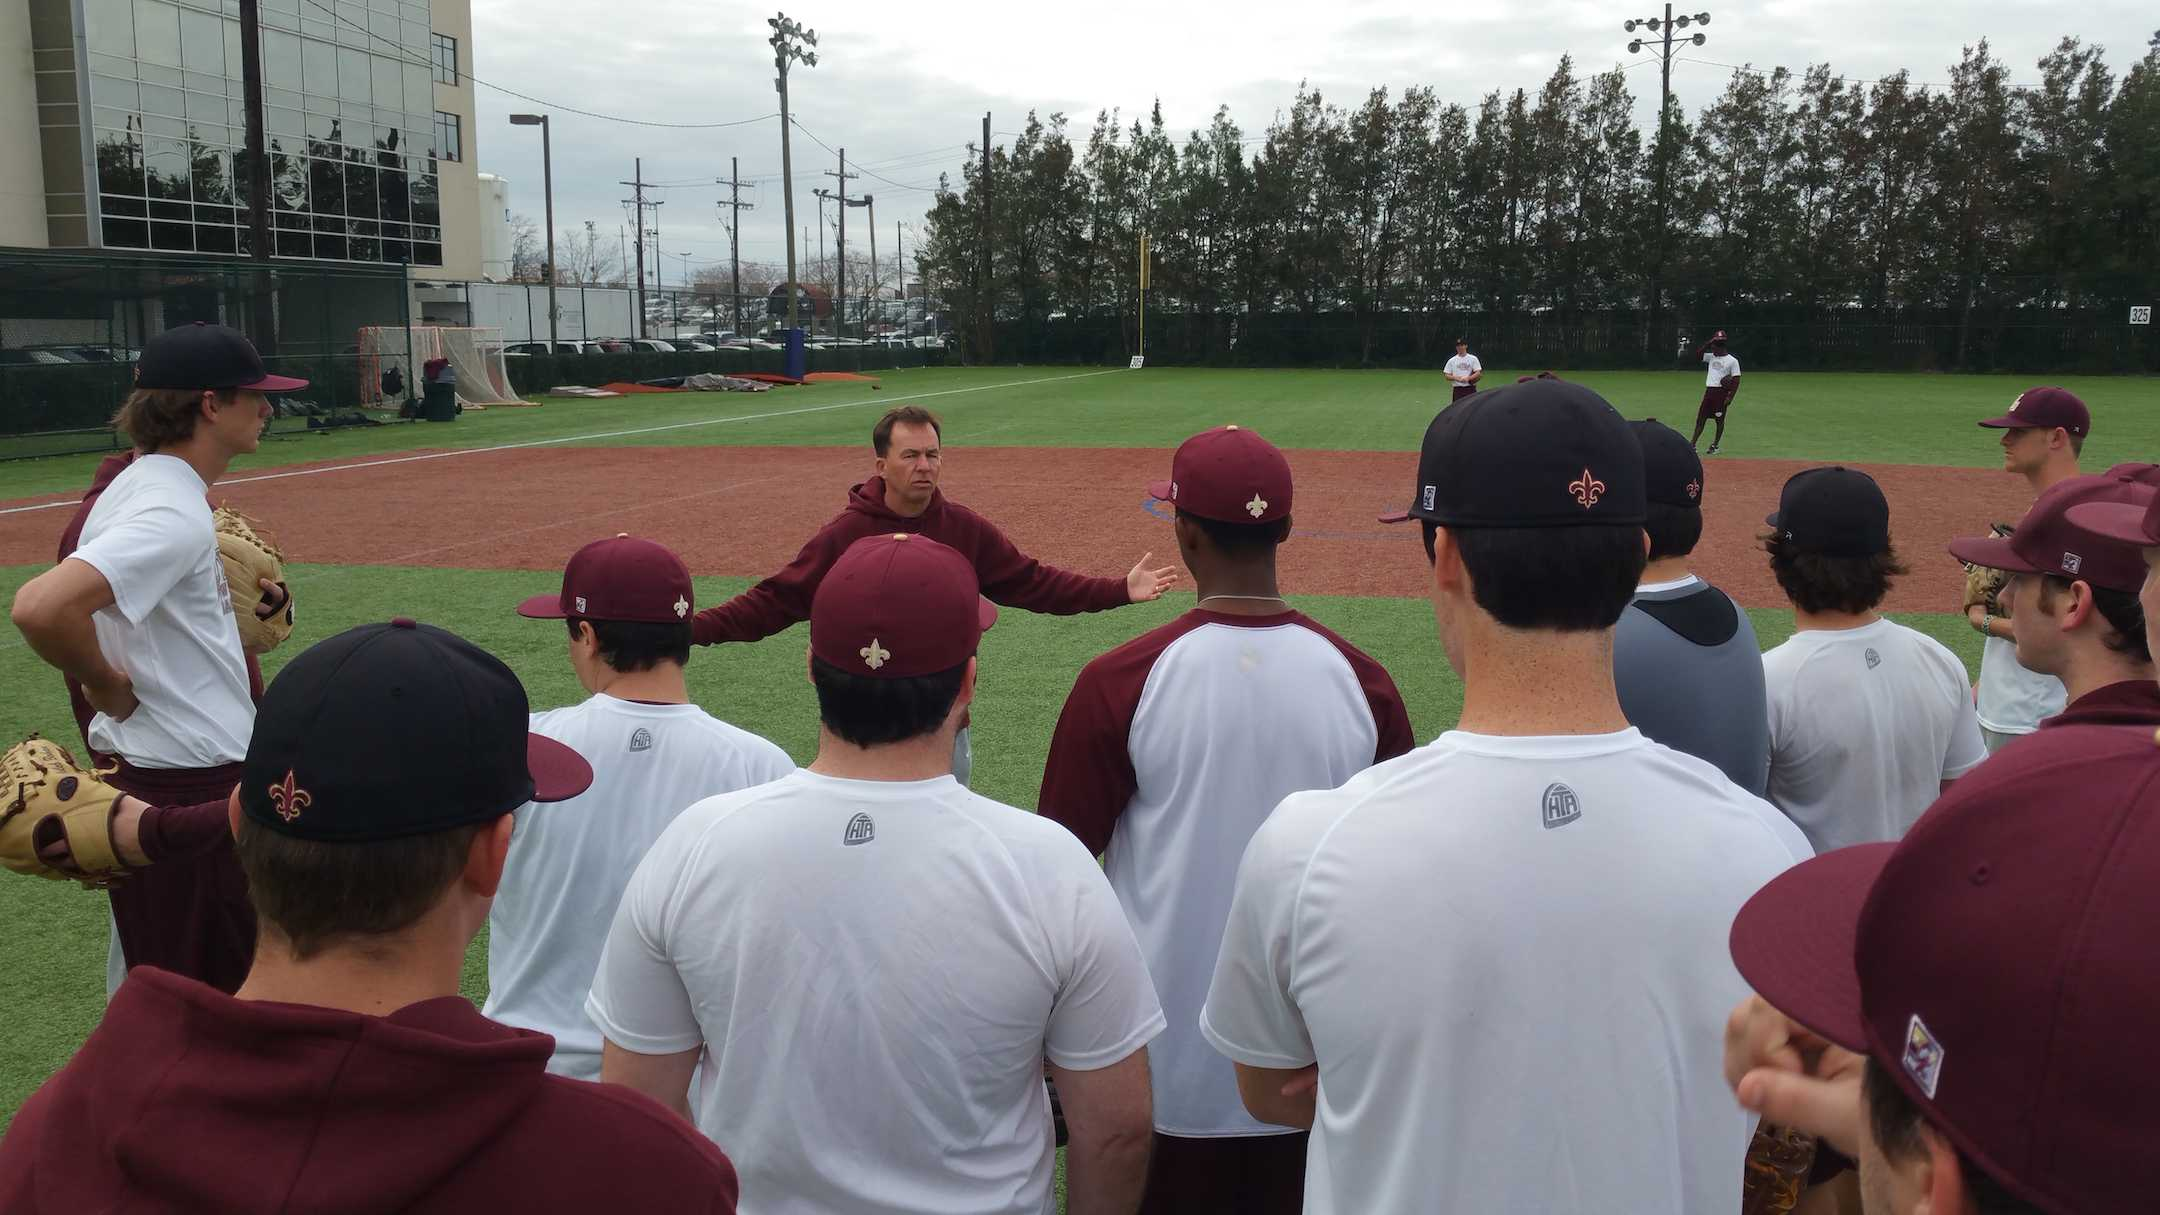 Doug Faust, head coach, addresses the Loyola baseball team at a team practice at Segnette Field. The baseball team has a record of 18-25 on the season and plays their next game in Mobile, Alabama against the University of Mobile on April 15 at 6 p.m.